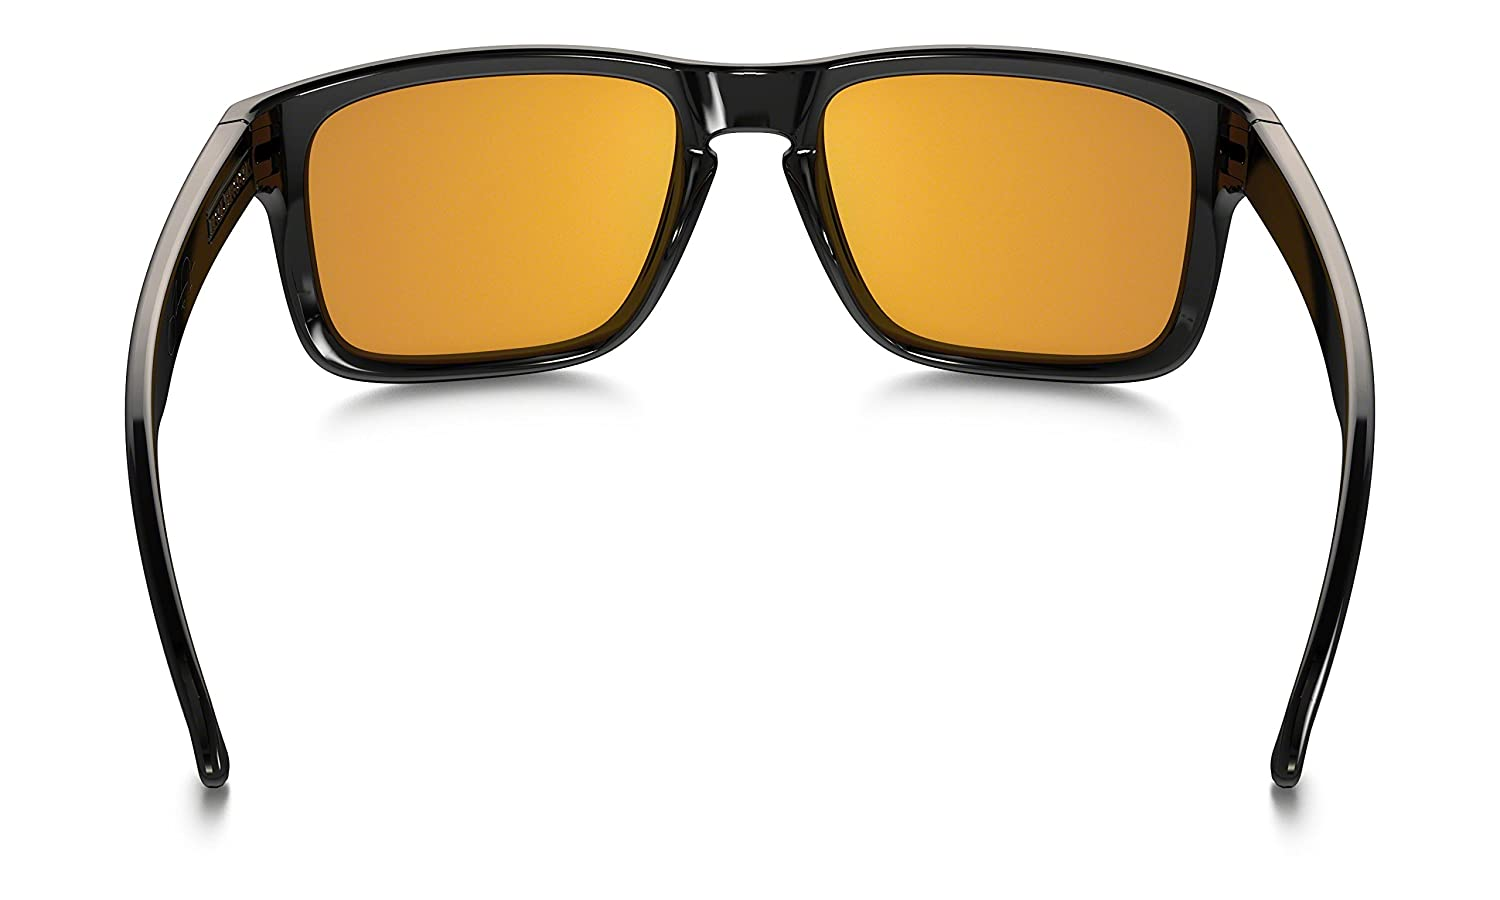 8d96c1fbecb86 Amazon.com  Oakley Holbrook Sunglasses  Clothing